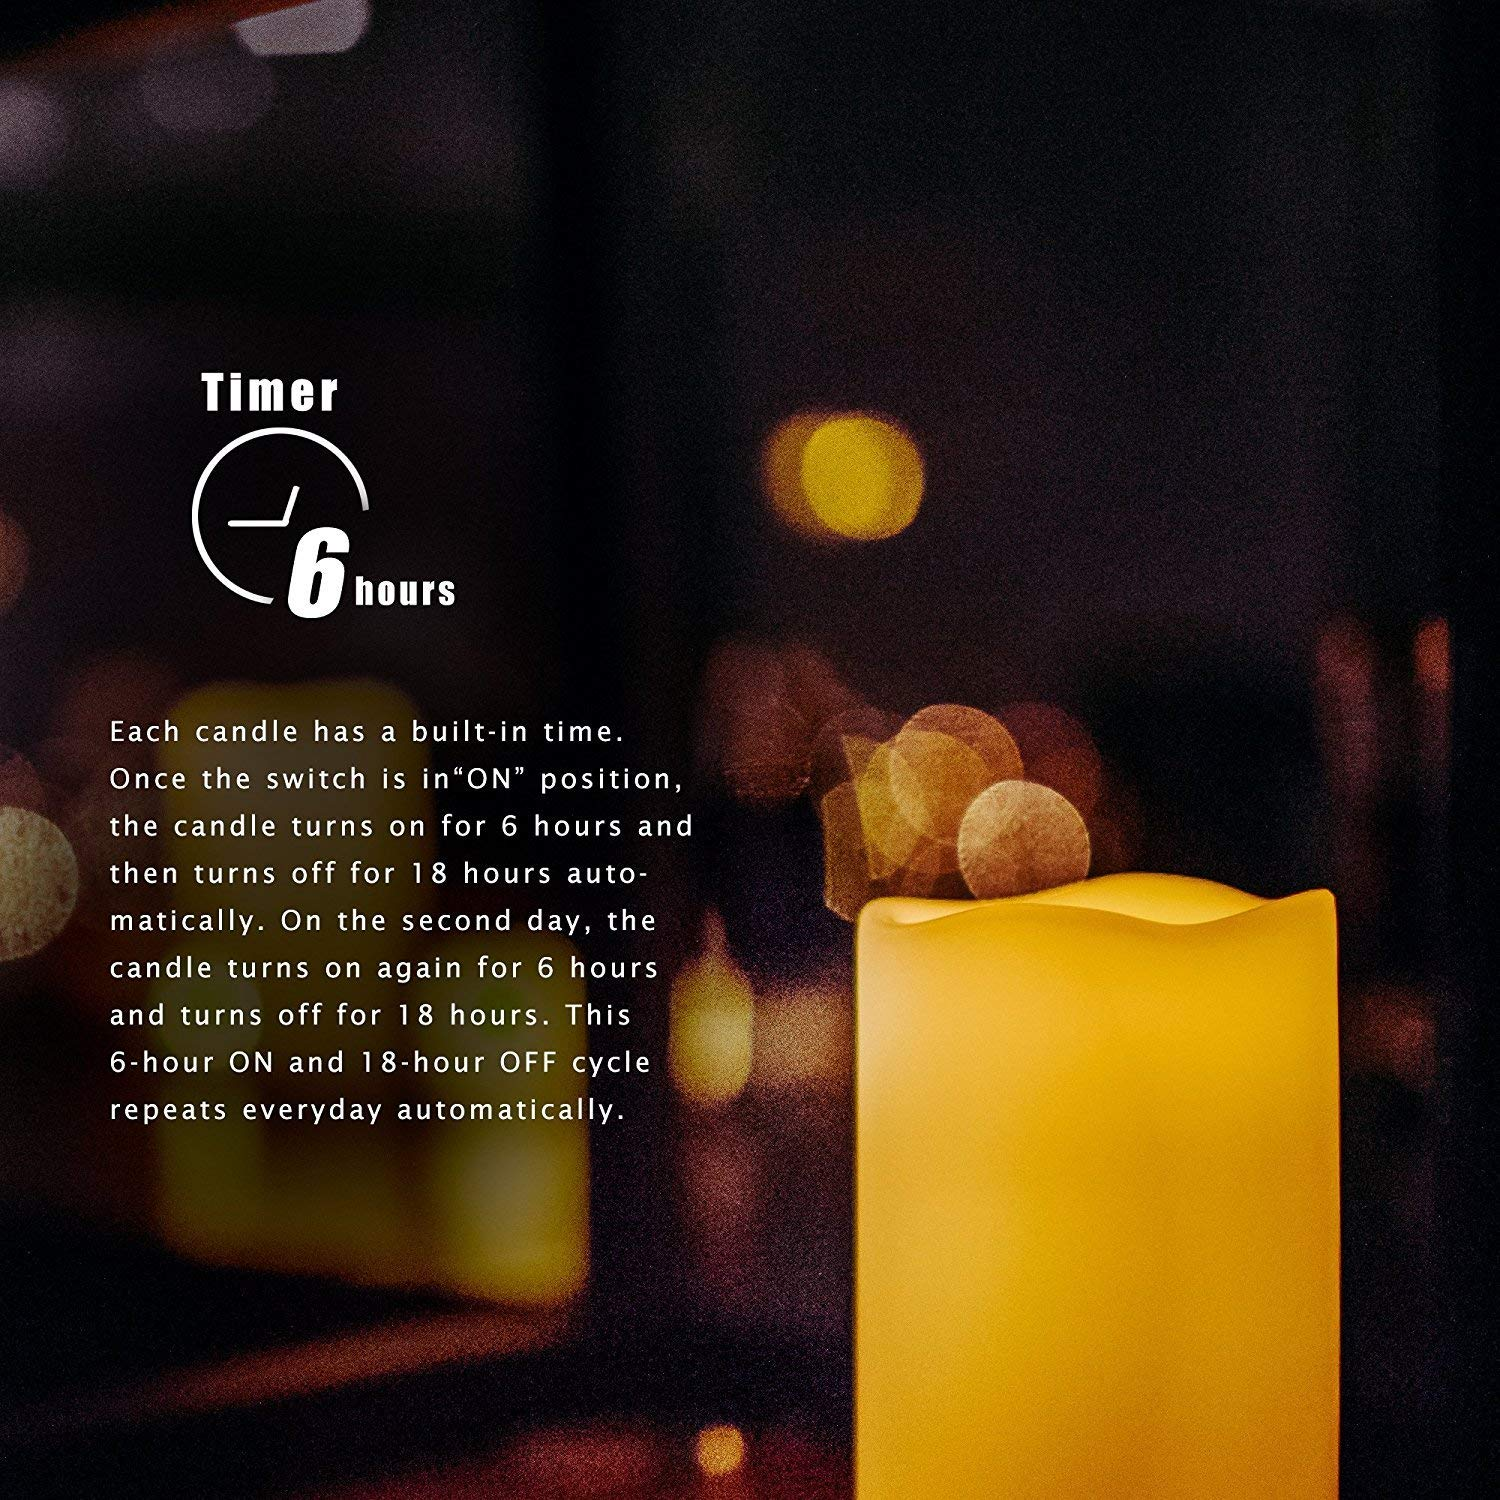 Set of 3 Waterproof Flameless LED Candles with Timer Realistic Flickering Powered Electric Electronic Plastic Resin Candles Outdoor Pillar Candles Battery Operated 3x6